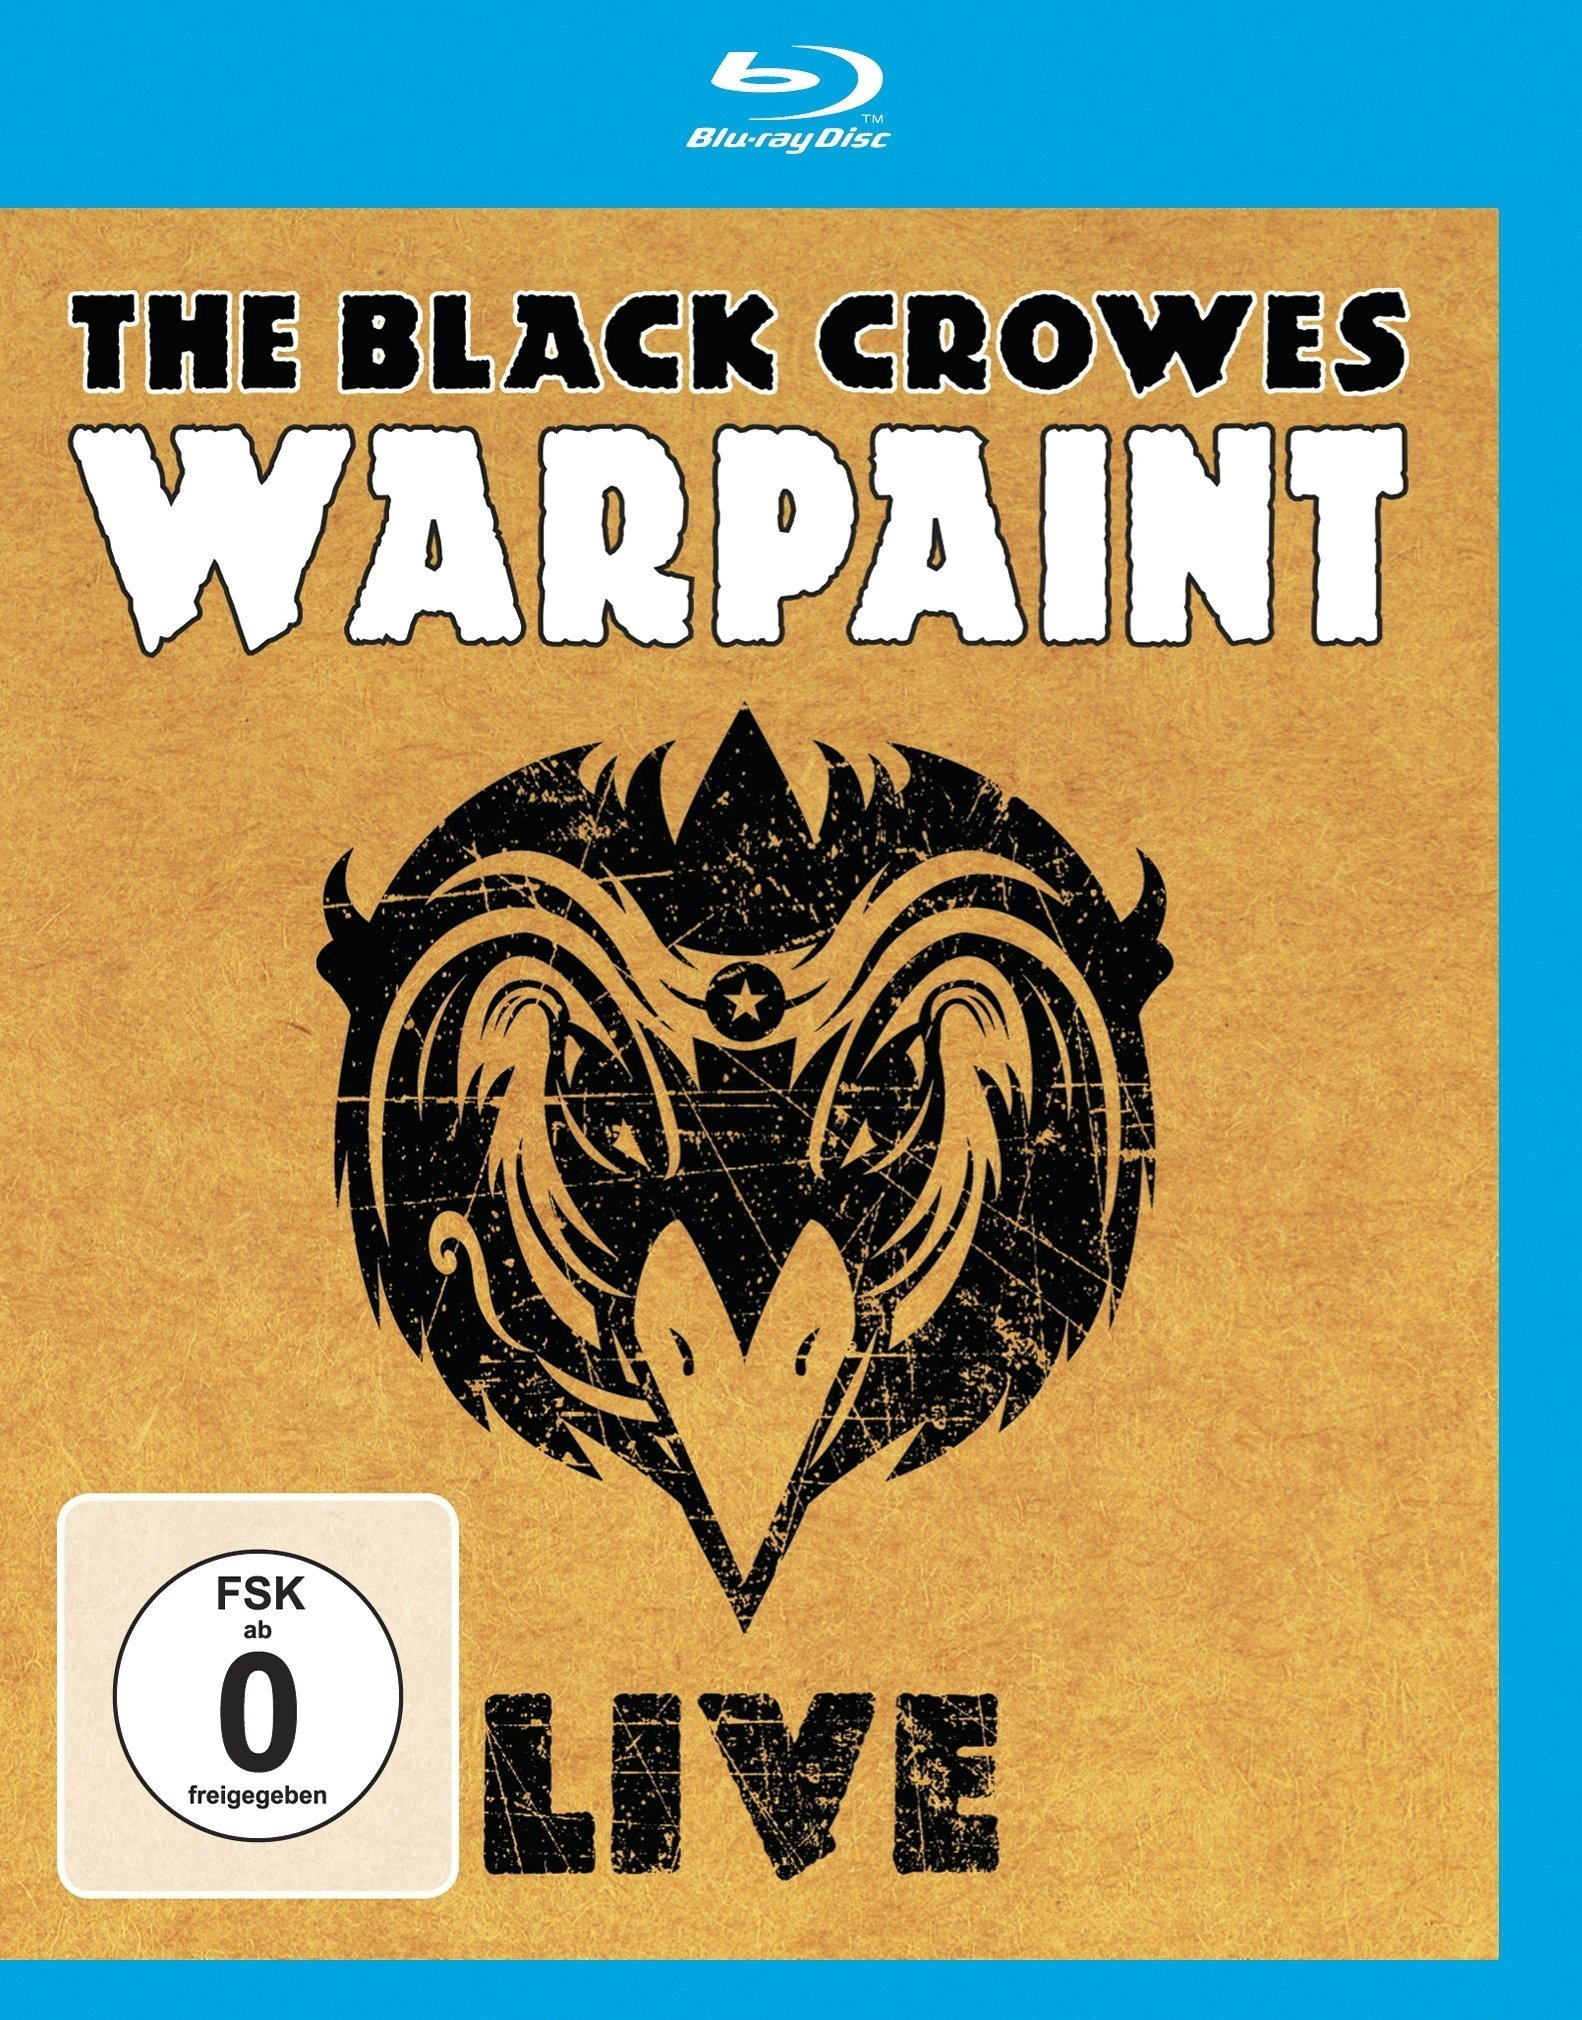 The Black Crowes Warpaint Live 2009 1080p MBluRay REPACK x264-HDMD